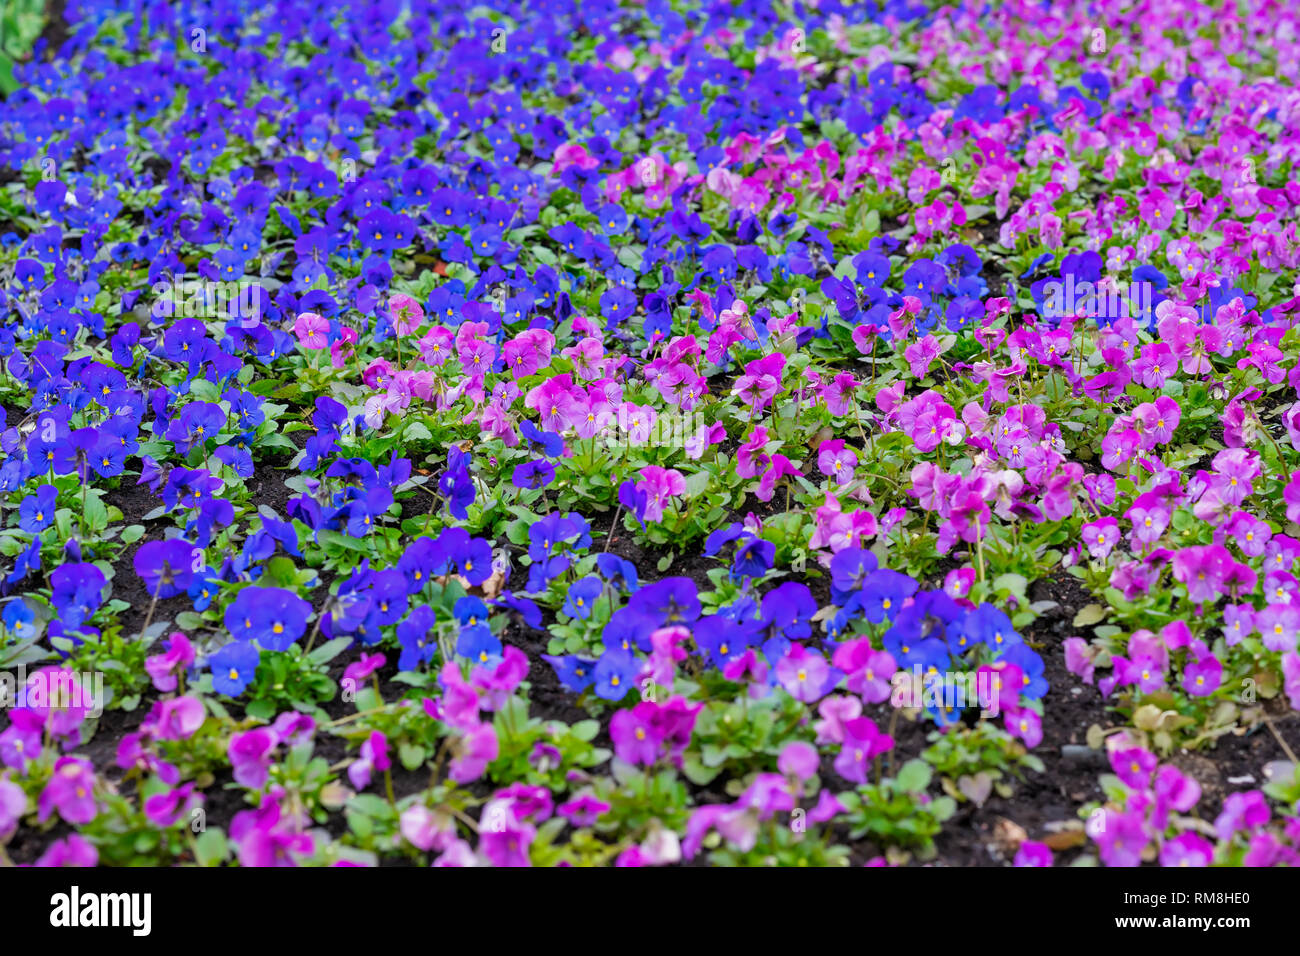 Bright picturesque flowerbed, violet and pink flowers pansy on a sunny day. Natural scenic background Stock Photo